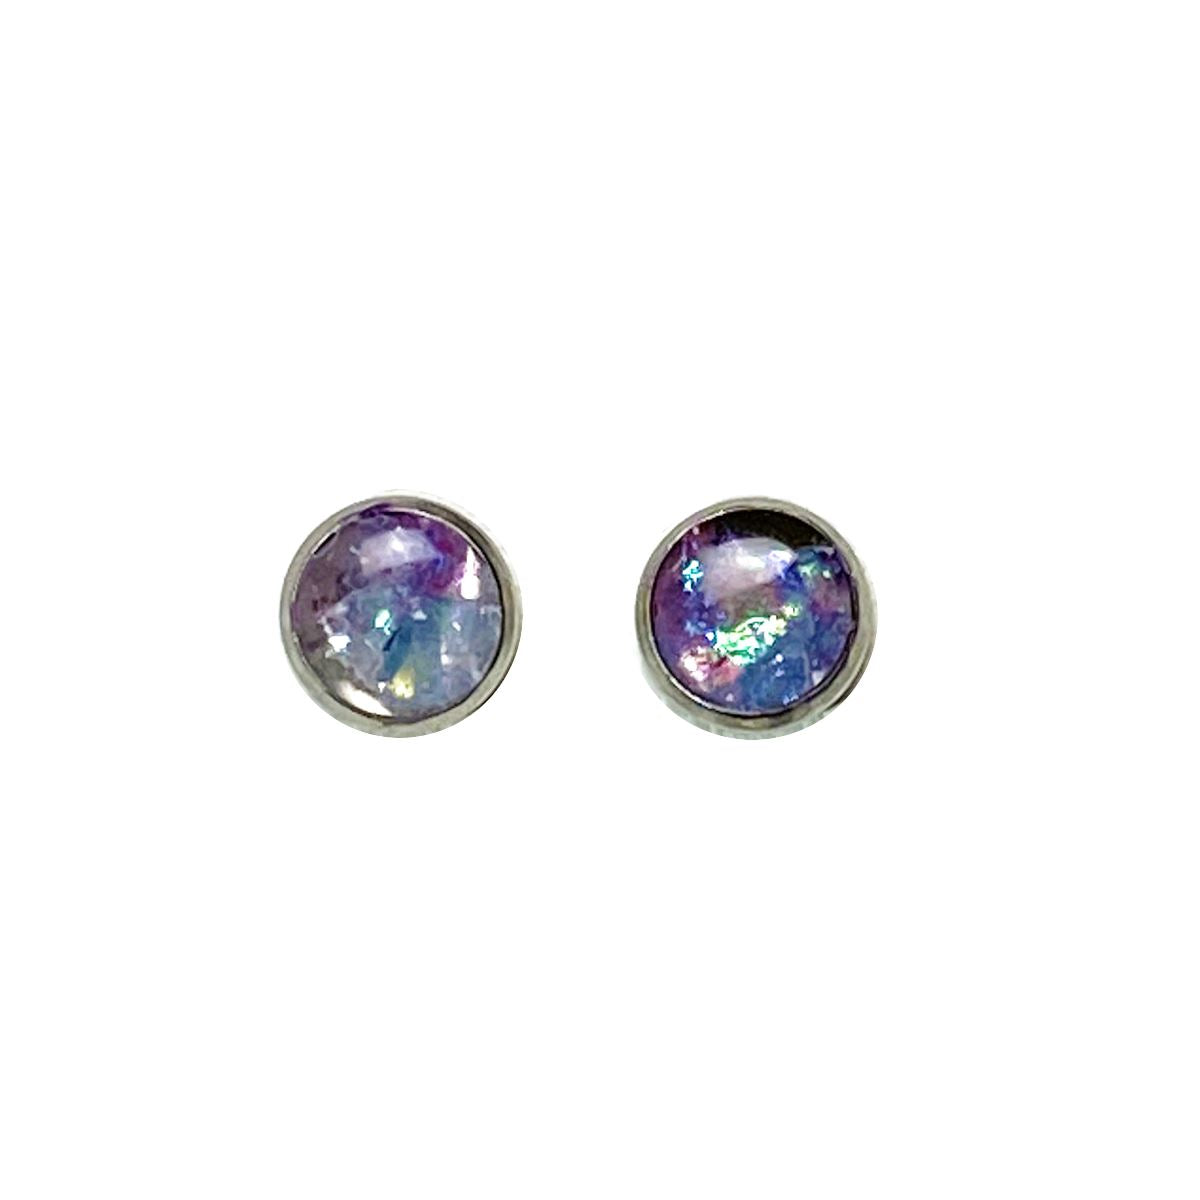 Unicorn Dreams - holographic lavender 8mm stud earrings Deanna Dot Store